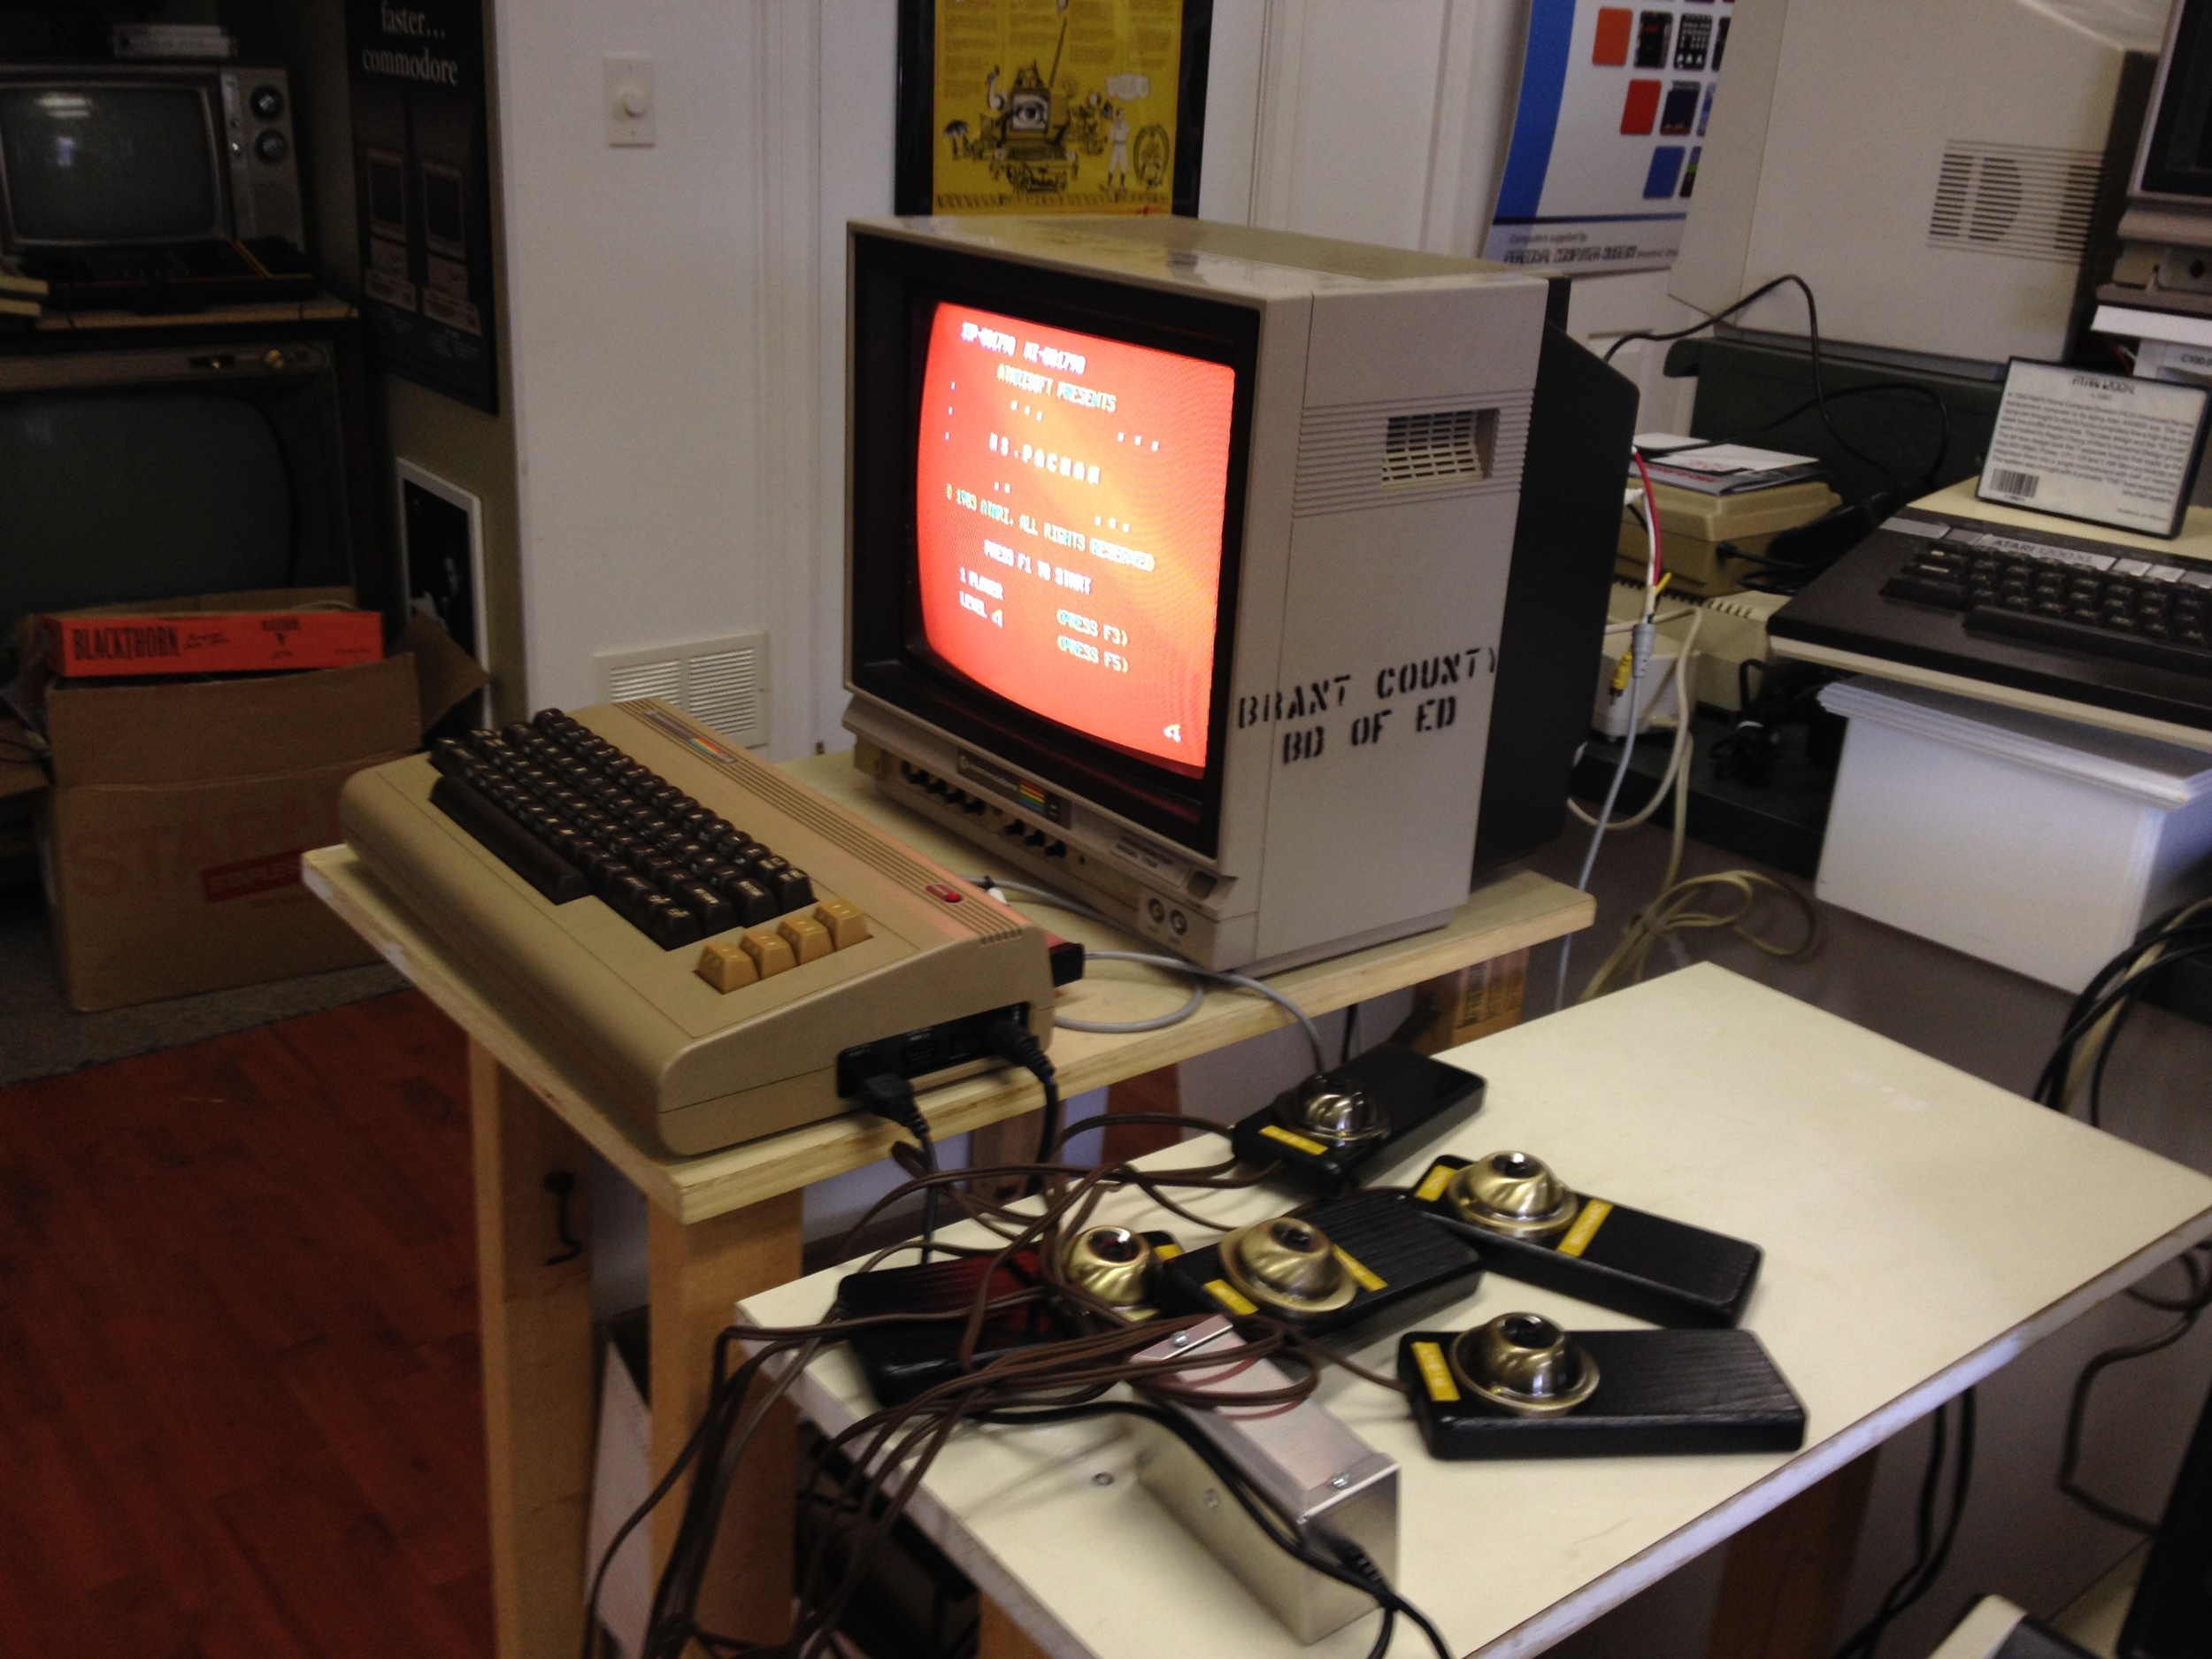 Syd Bolton's original 4-player controller design for classic Pac-Man on the Commodore 64.